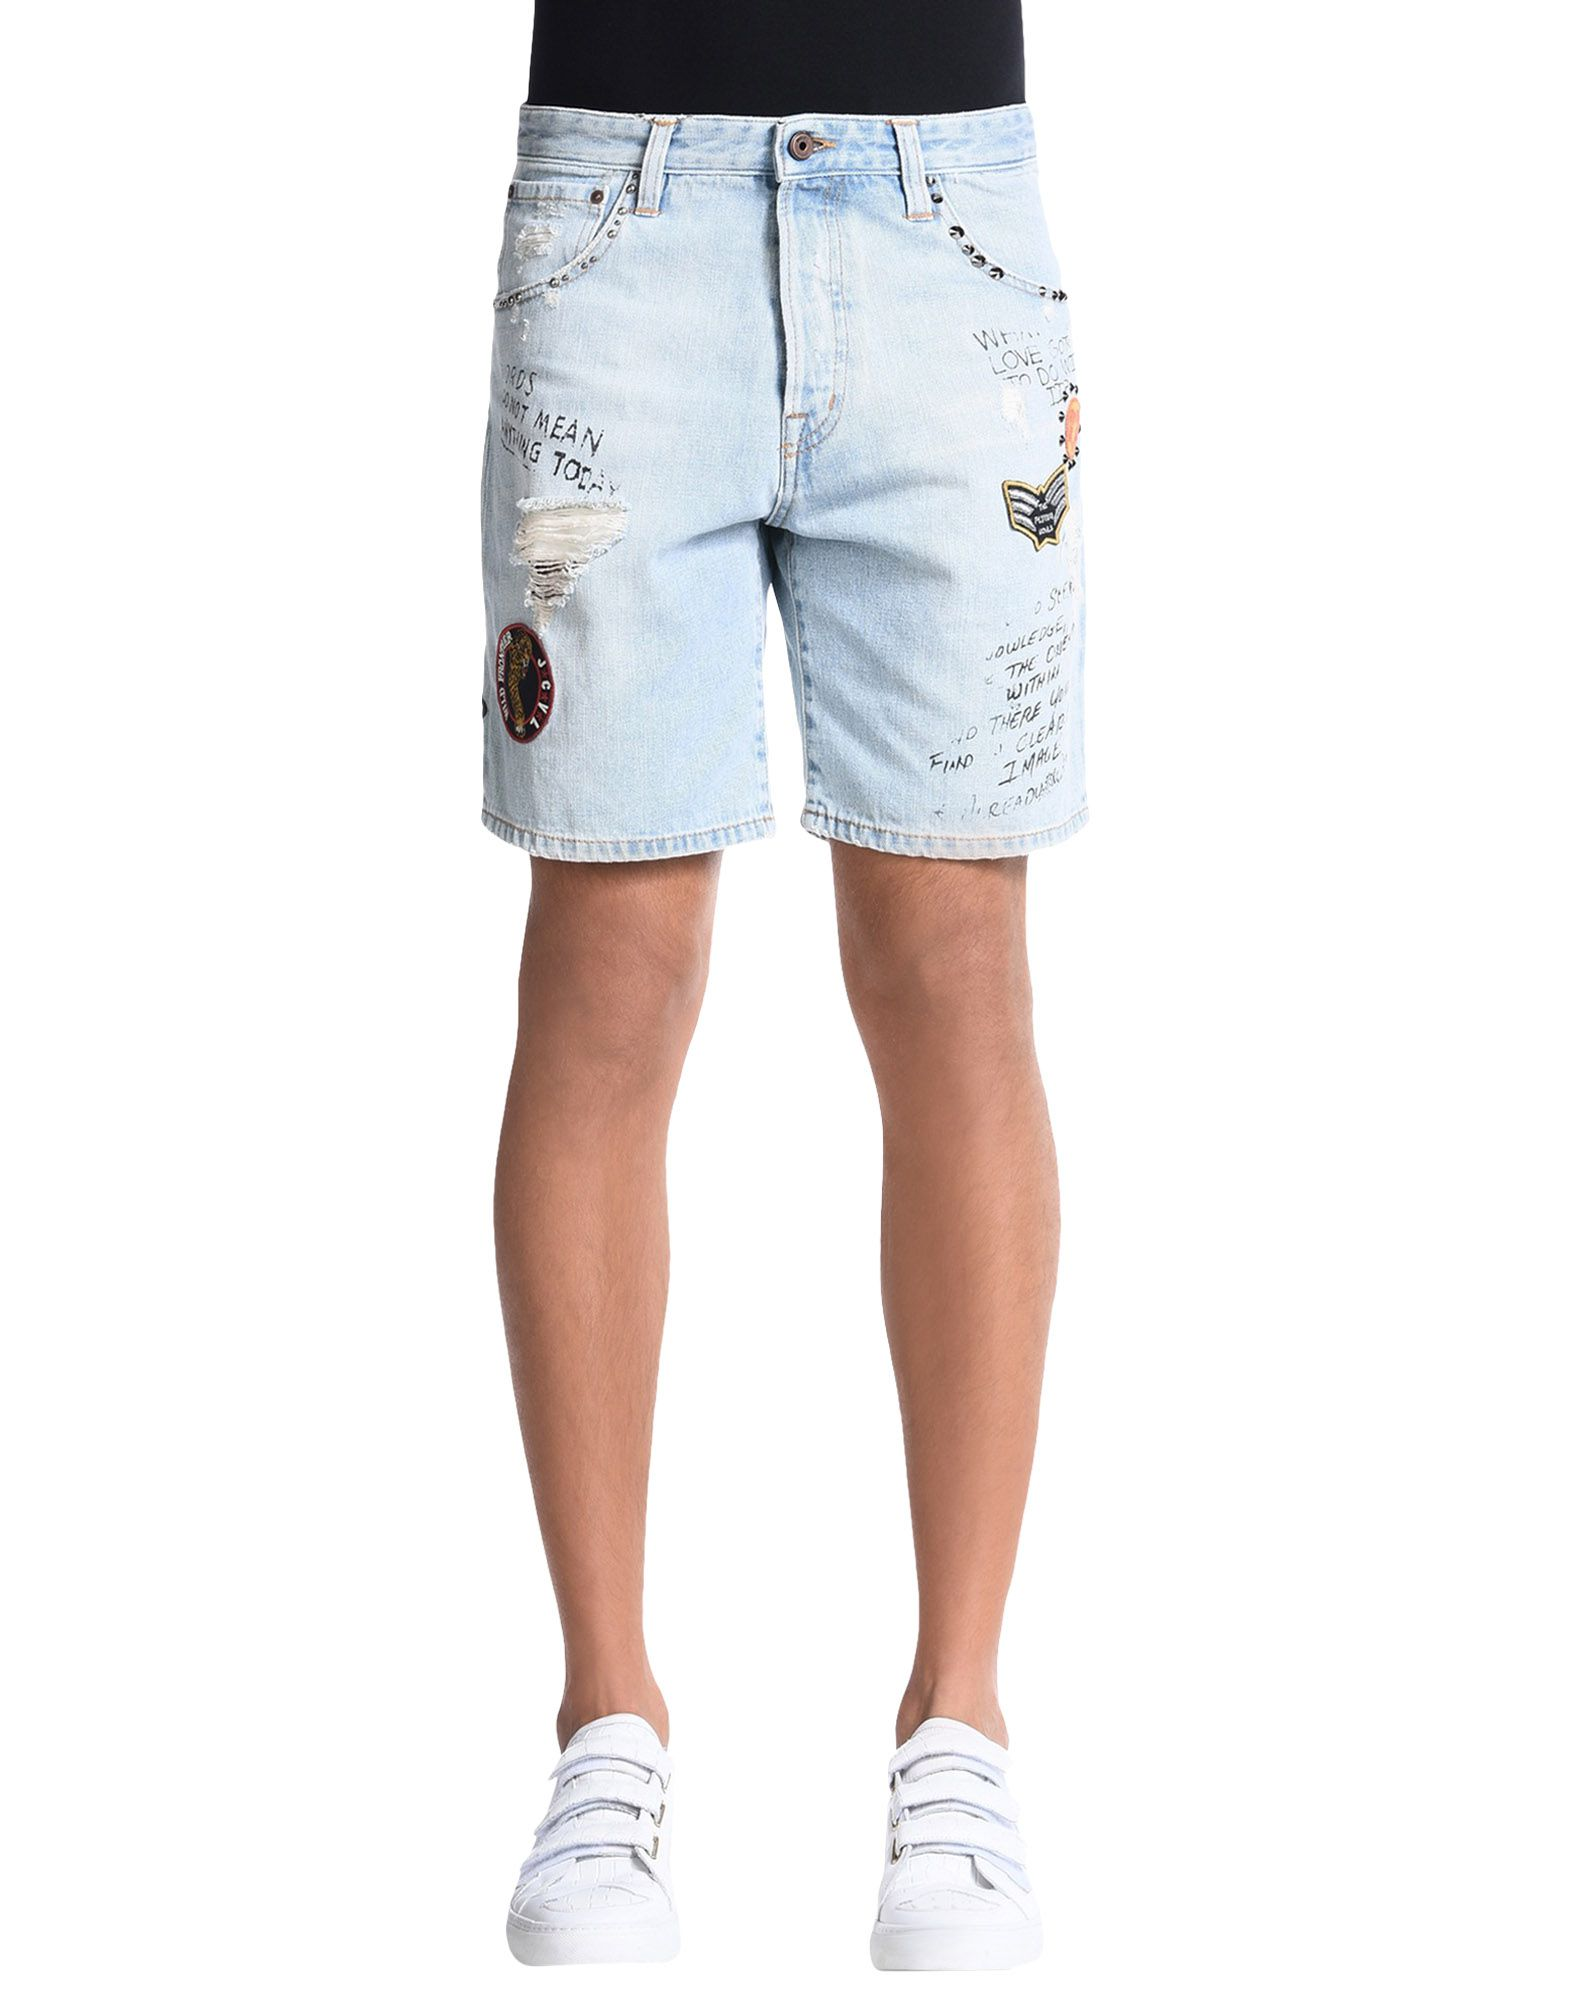 Shorts Jeans Just Cavalli Uomo - Acquista online su